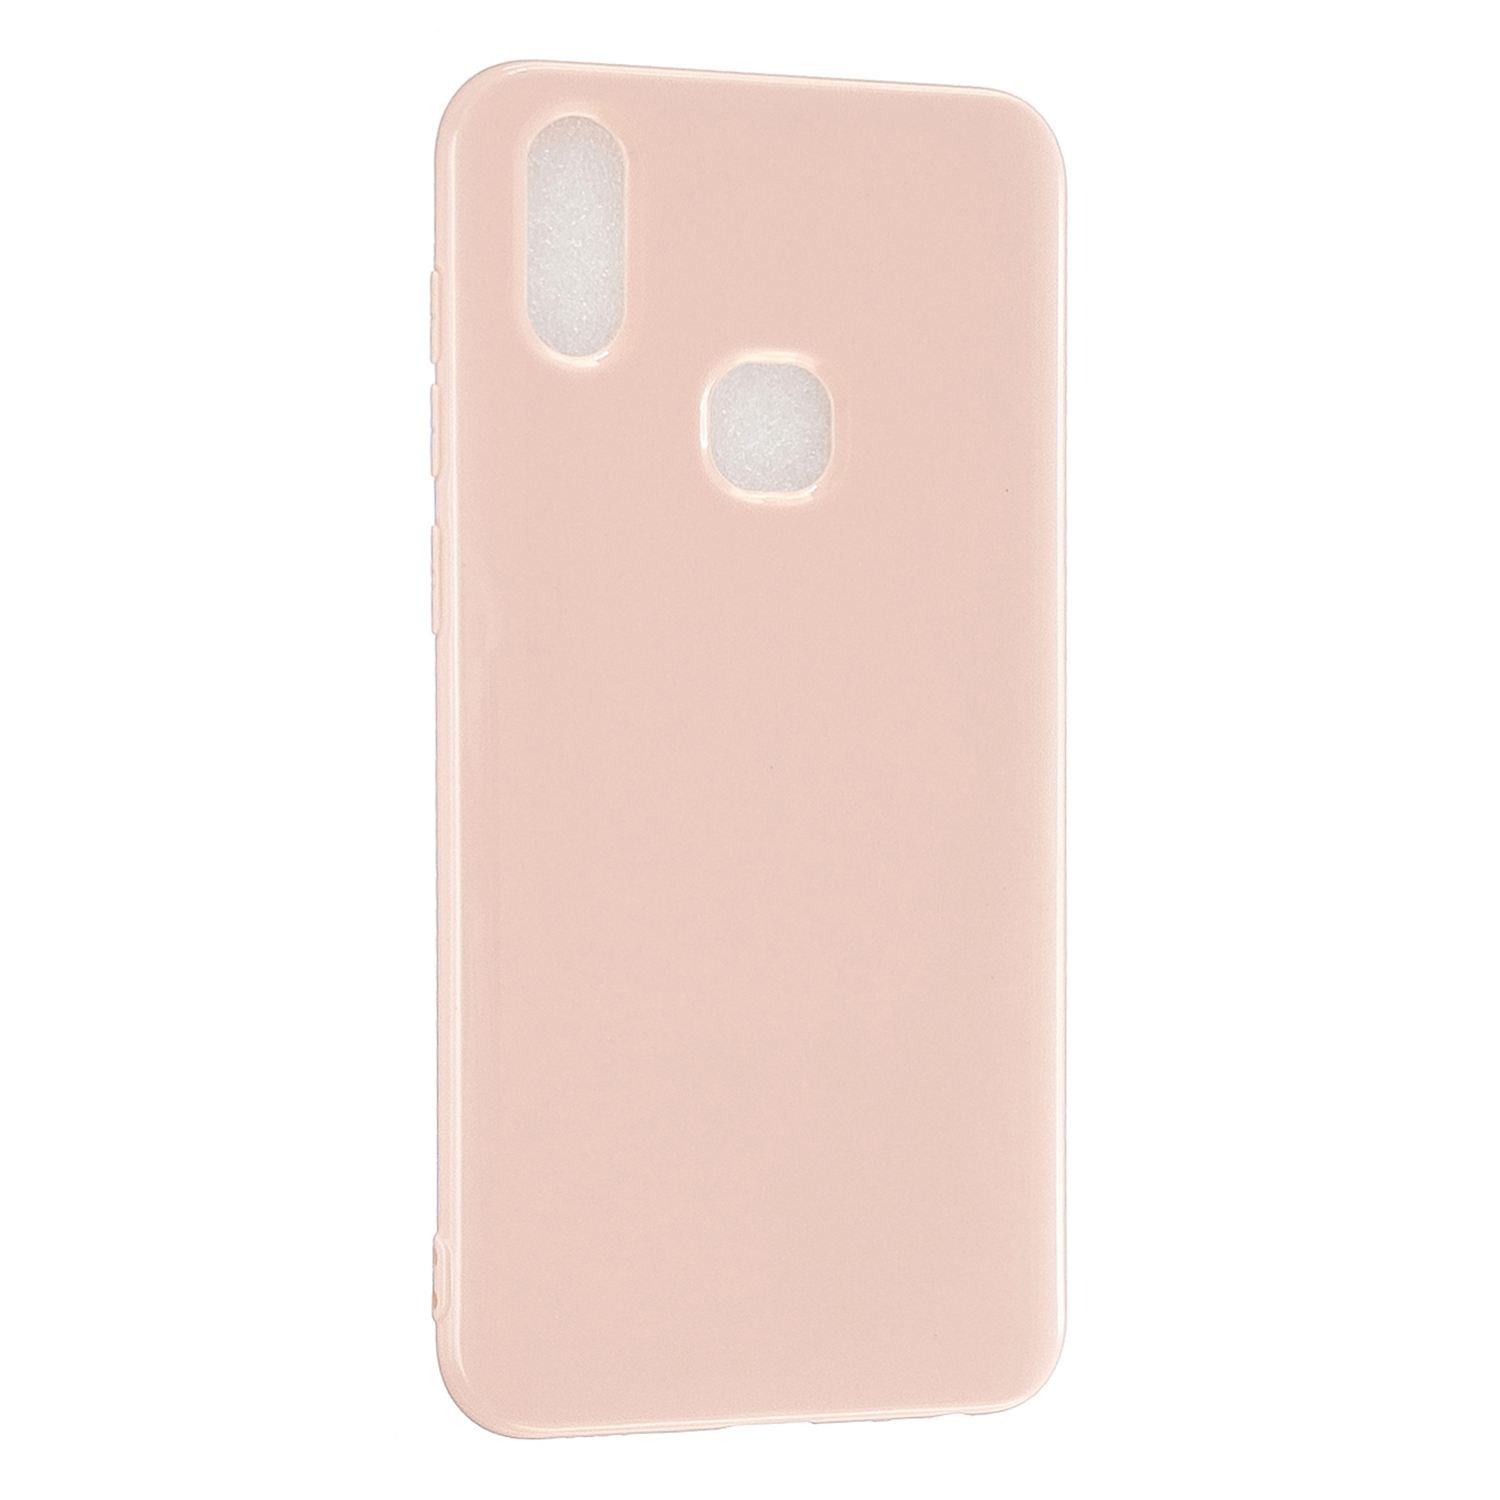 for VIVO Y17/Y3 / Y91/Y95/Y93 Thicken 2.0mm TPU Back Cover Cellphone Case Shell light pink